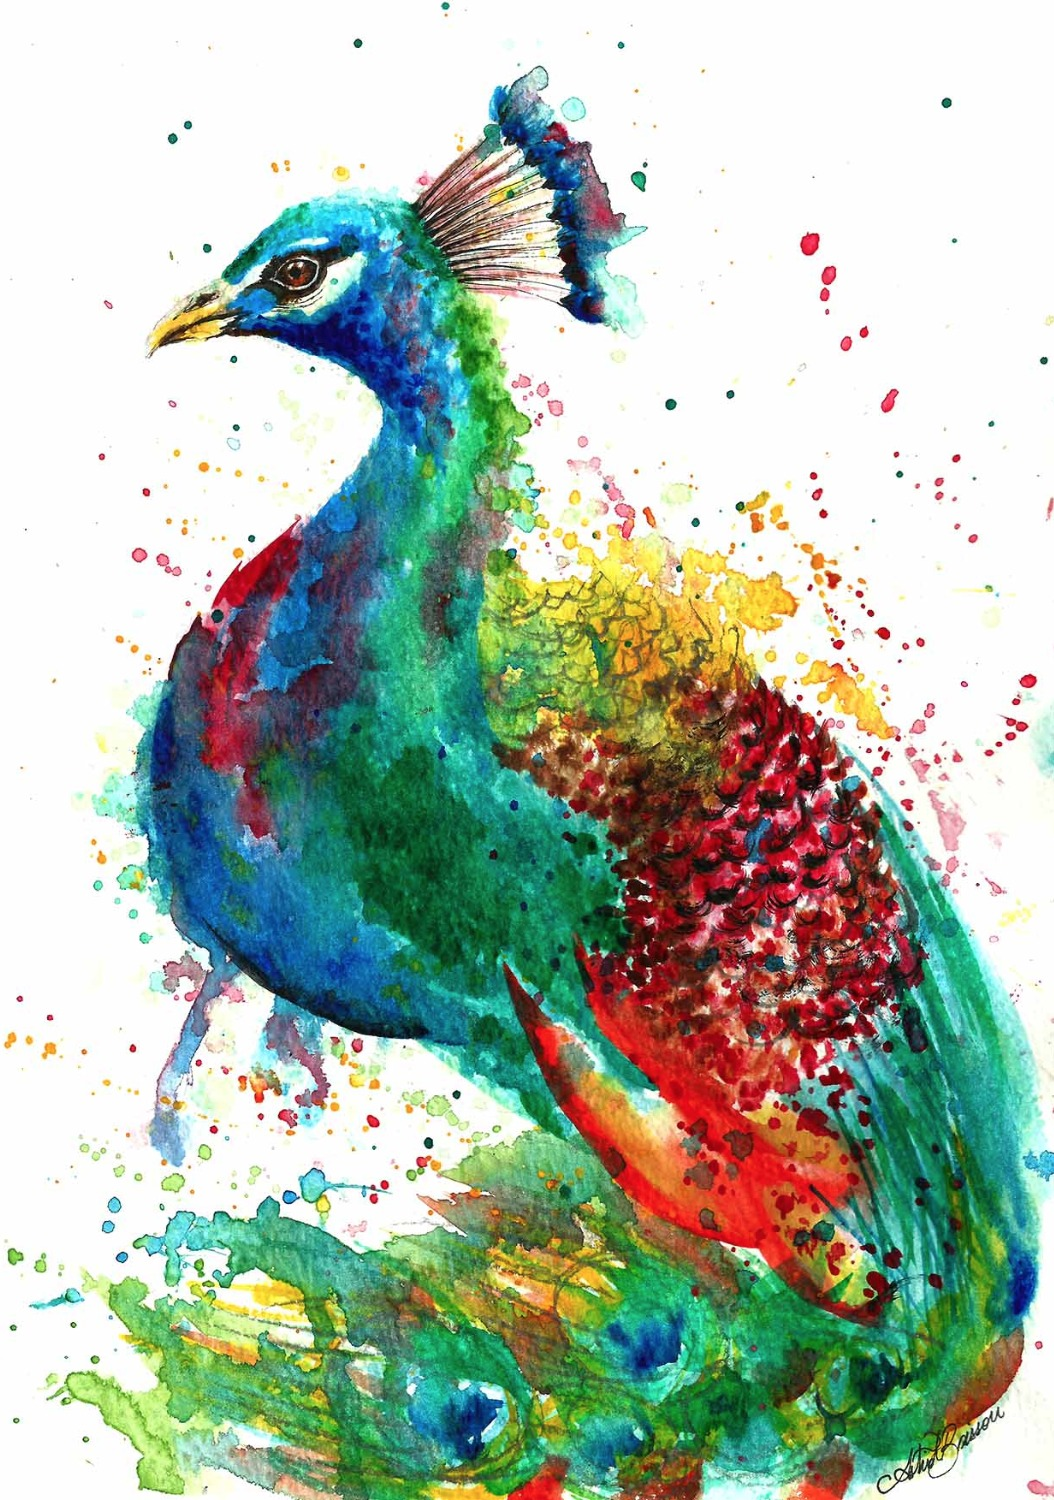 Watercolour Peacock Painting